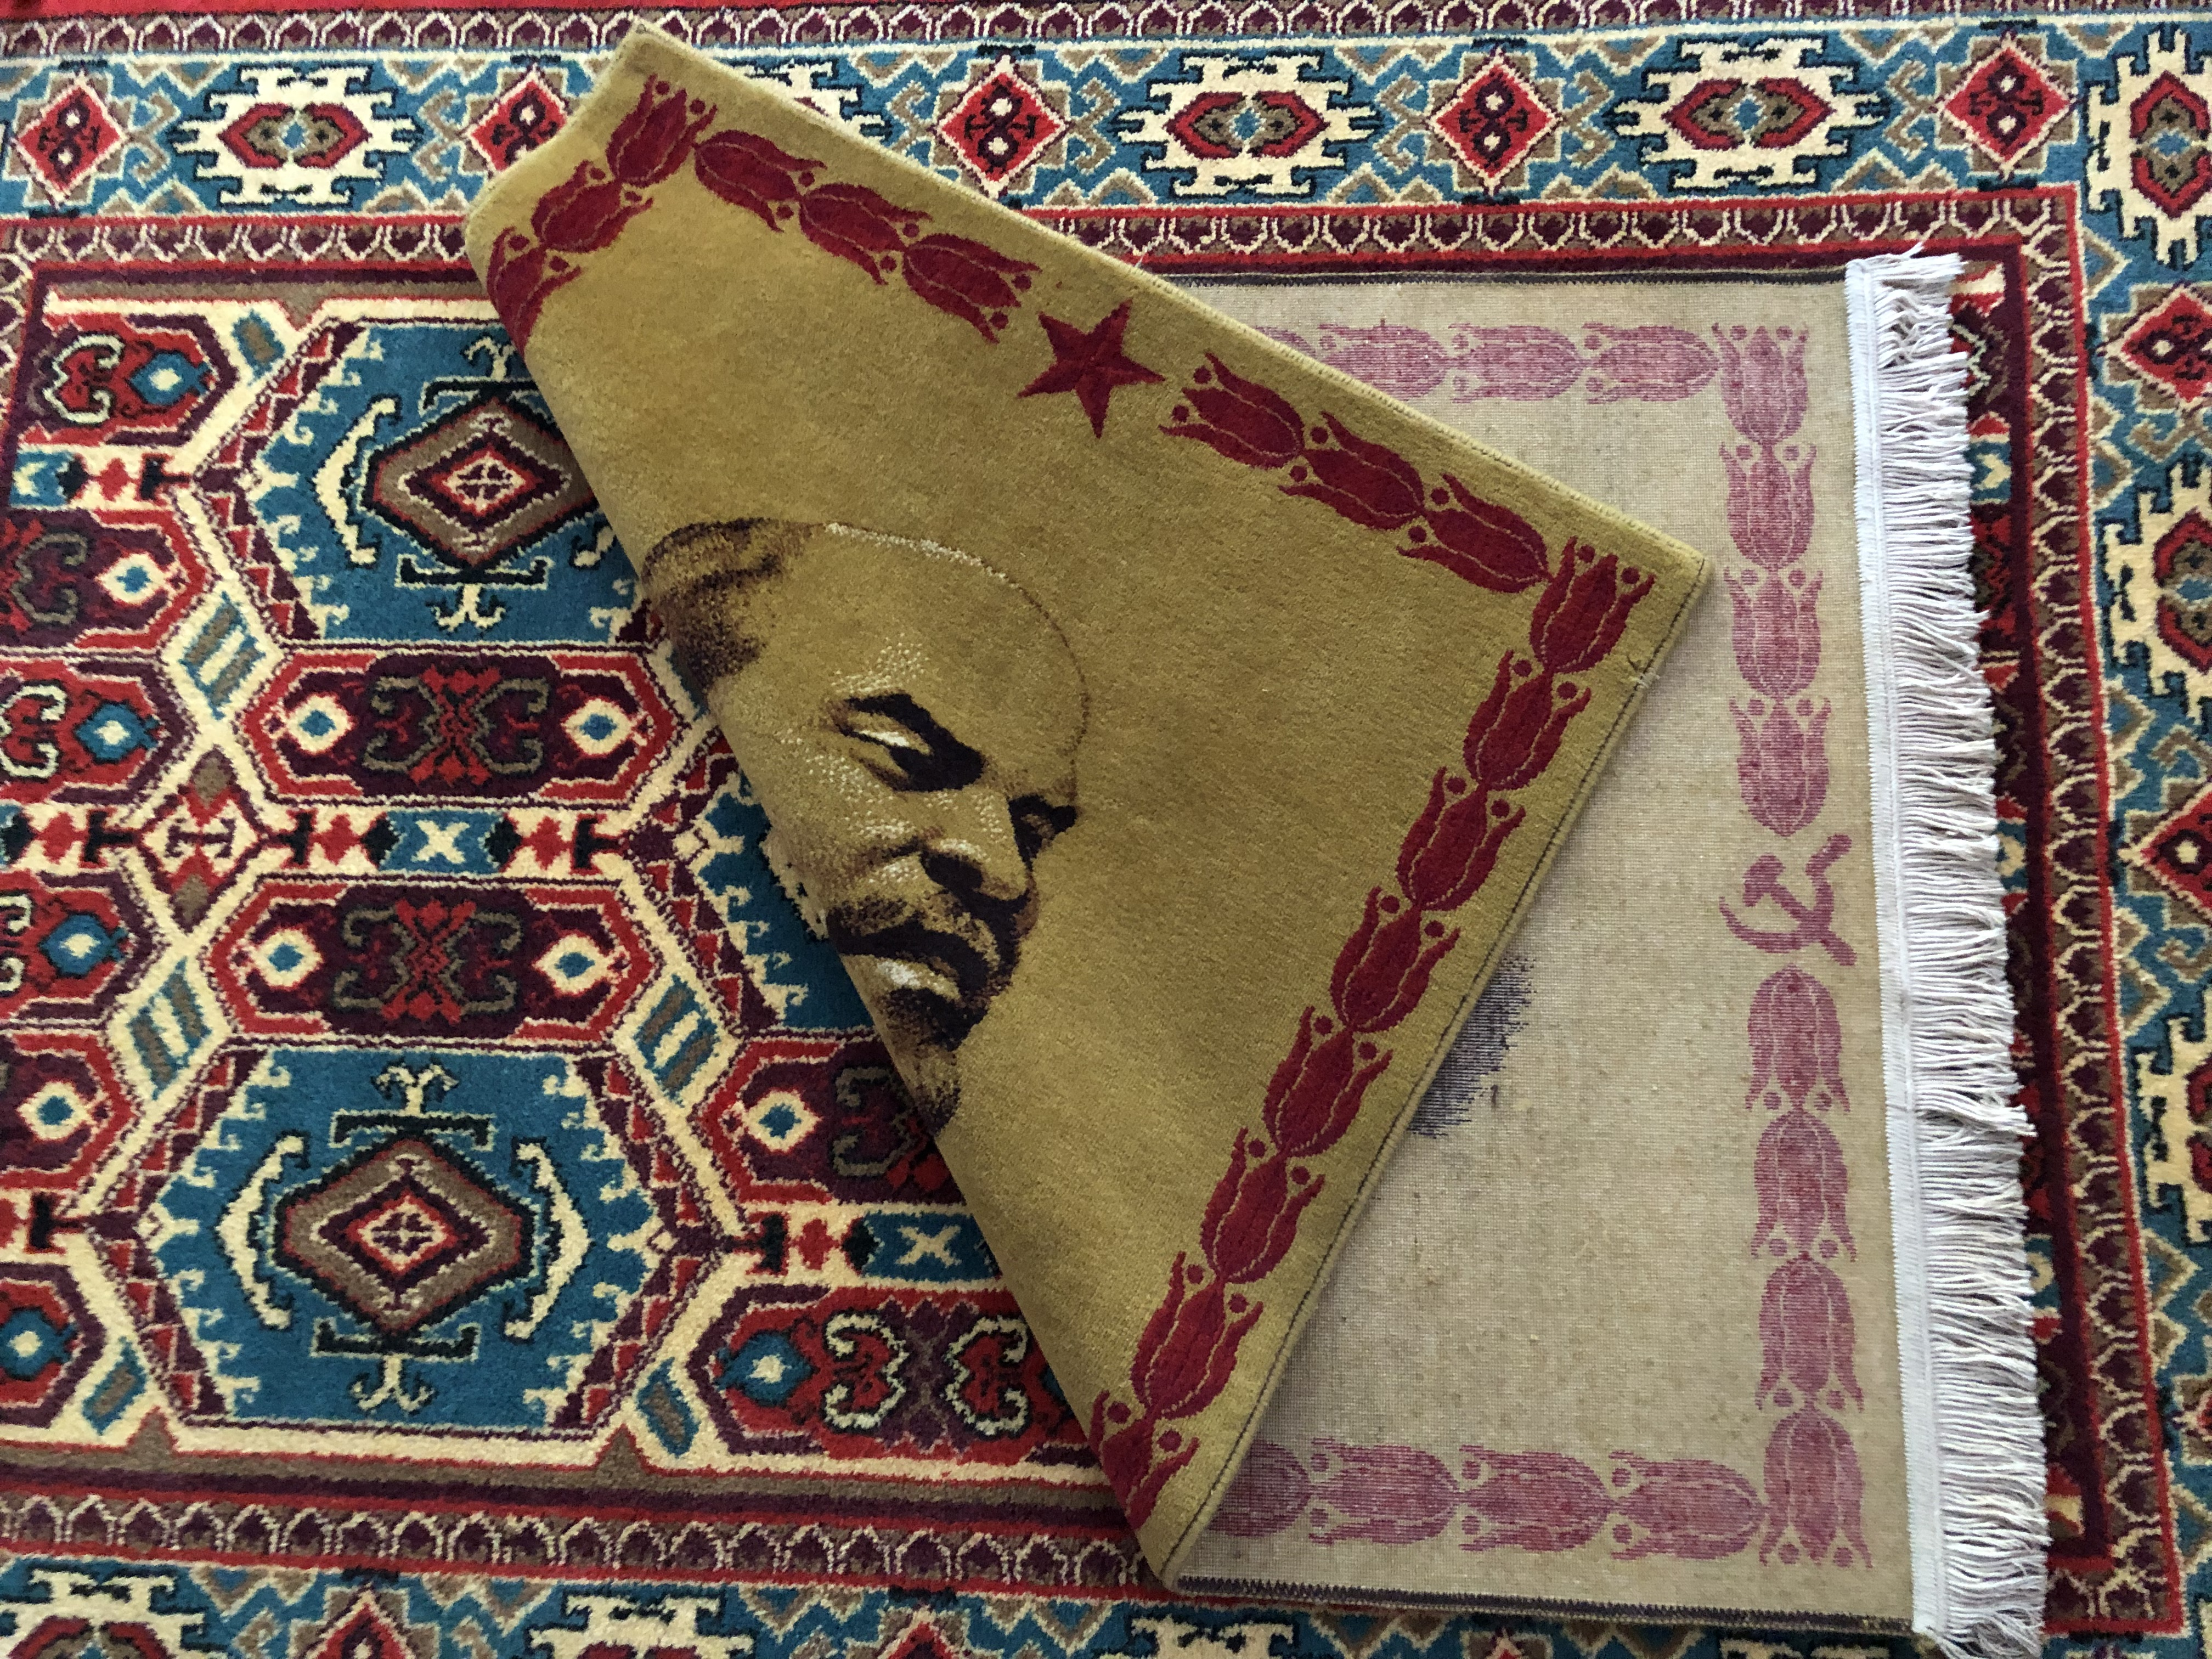 brown-lenin-rug-with-red-star-and-sickle-15-.jpg